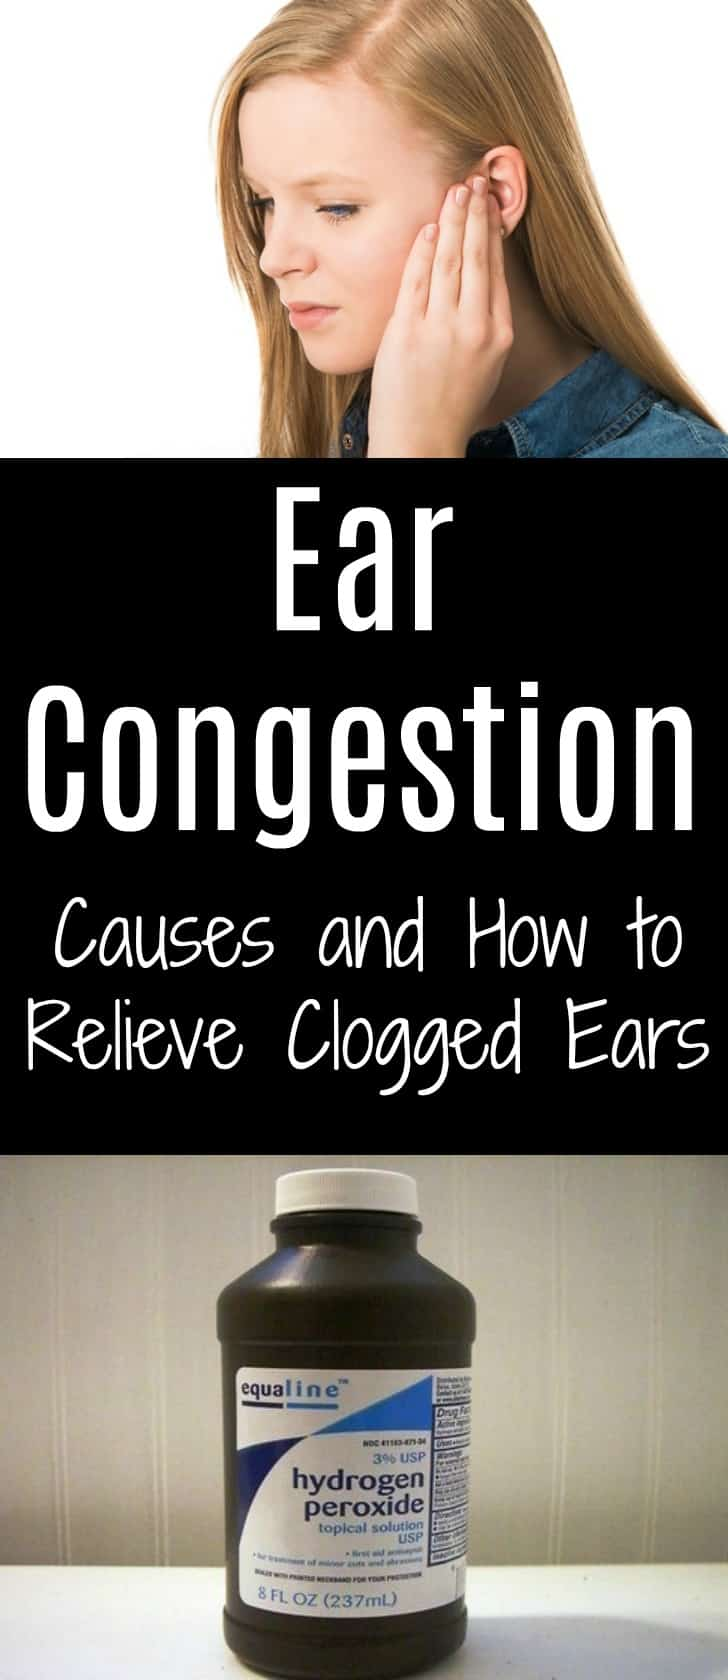 Ear Congestion – Causes and How to Relieve Clogged Ears